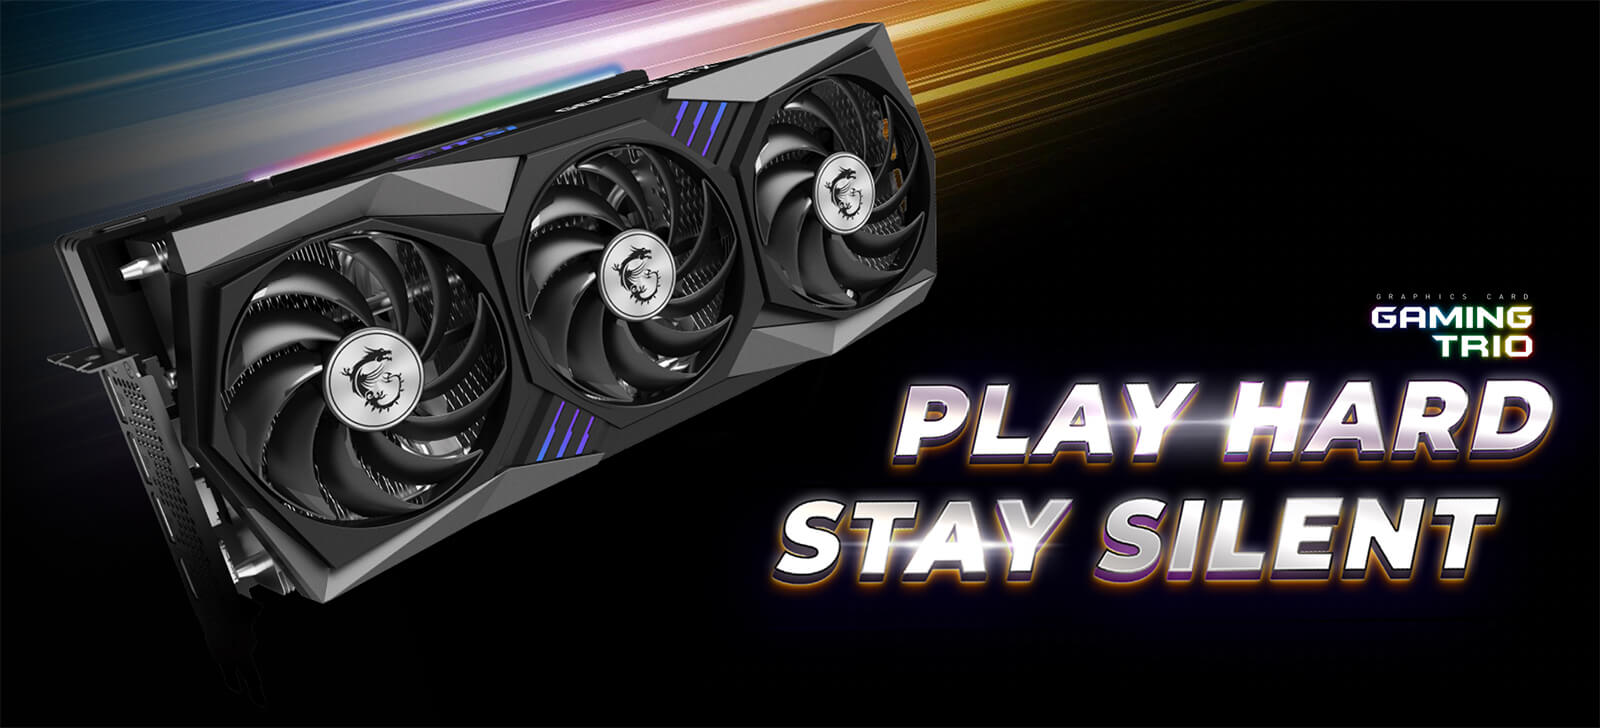 Msi Geforce Rtx™ 3060 Gaming Trio 12g Features